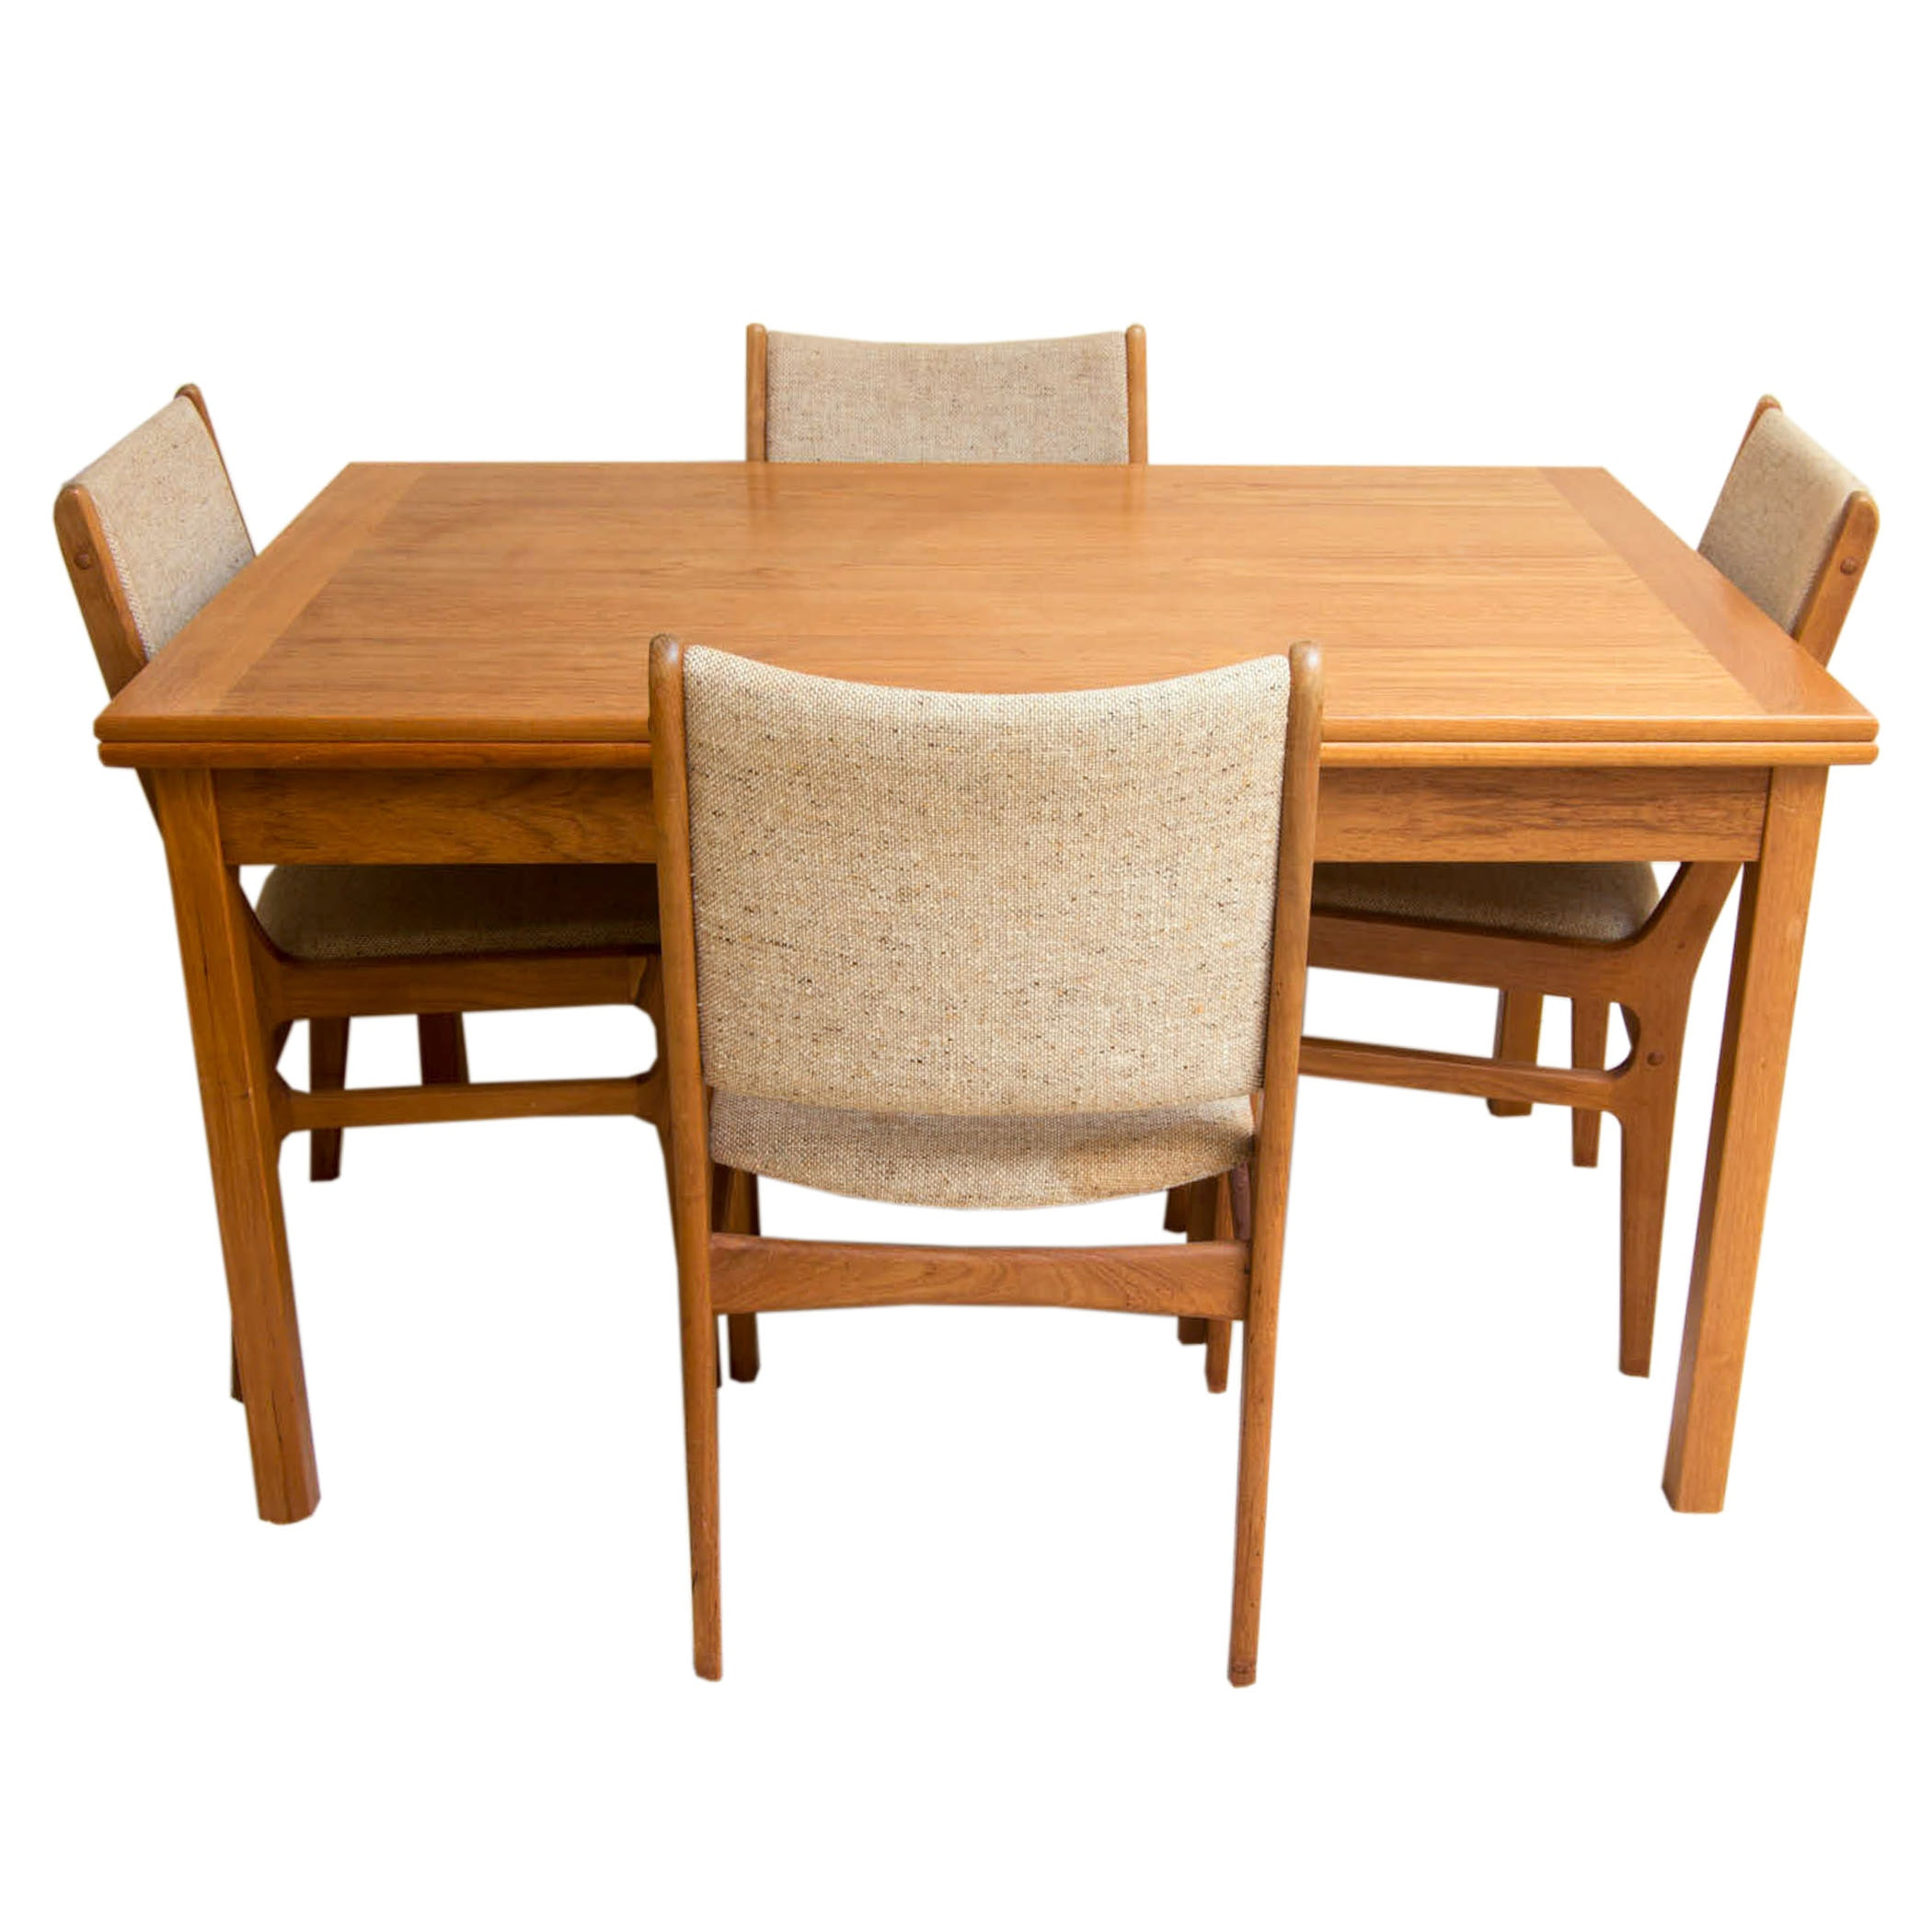 Danish Modern Teak Chairs By D-Scan With Dining Table : EBTH